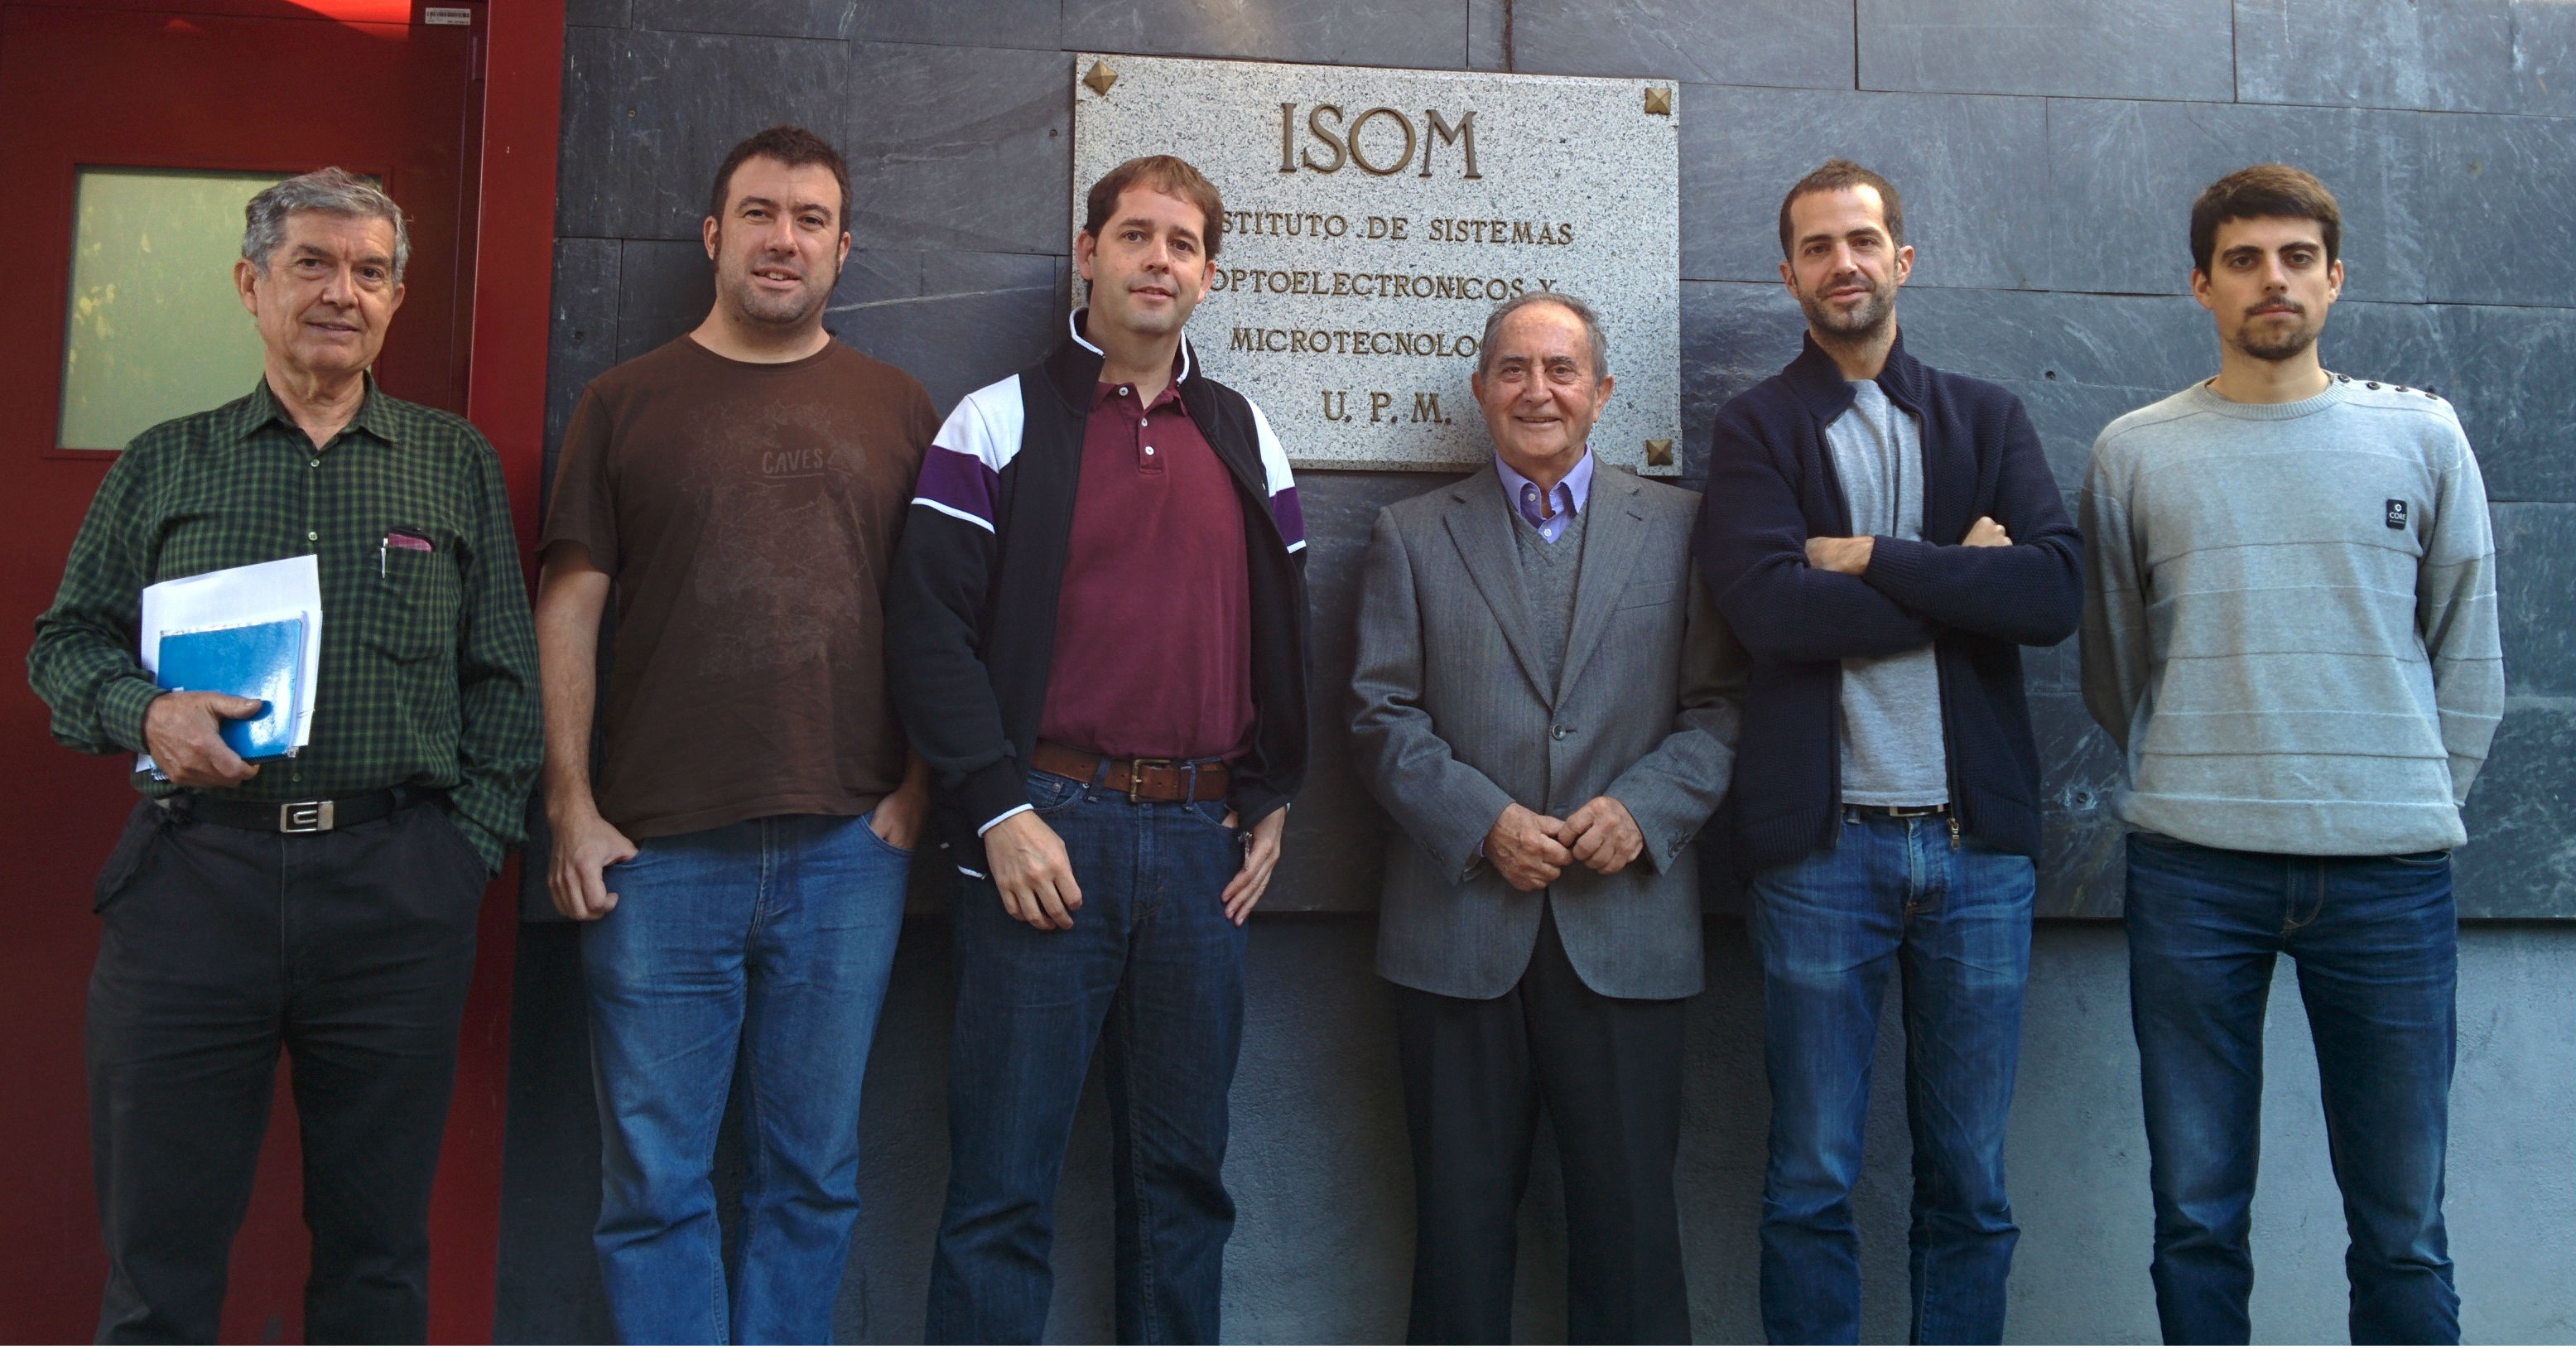 ISOM research team photo